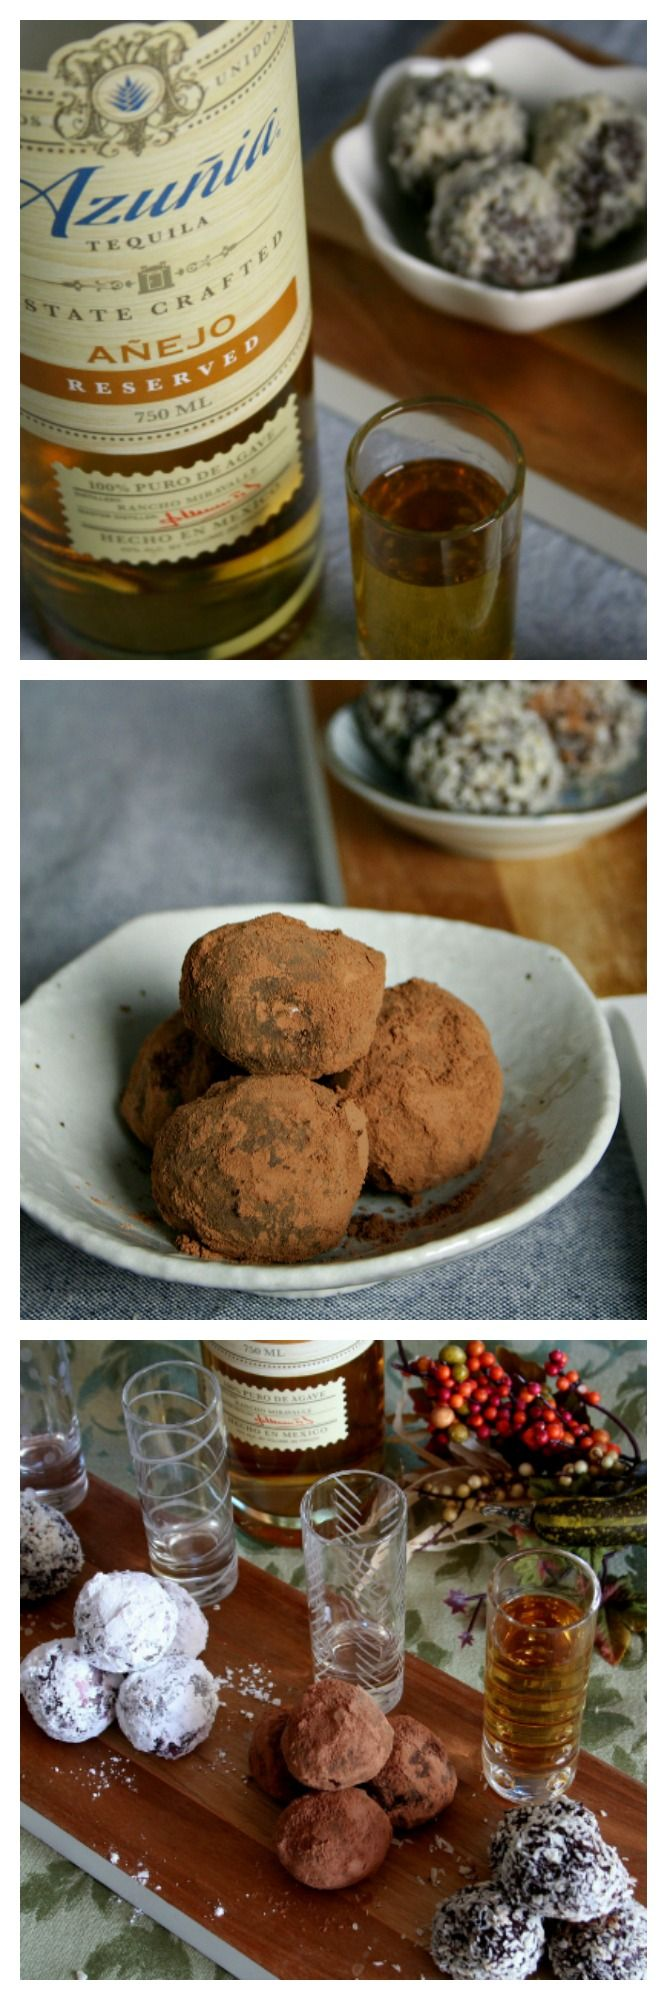 Thanksgiving meal ideas for the tequila lover with a Bonus Recipe: Hibiscus & Dark Chocolate Tequila Truffles with Azuñia Tequila. #chocolate #tequila #Thanksgiving #AzuniaTequia